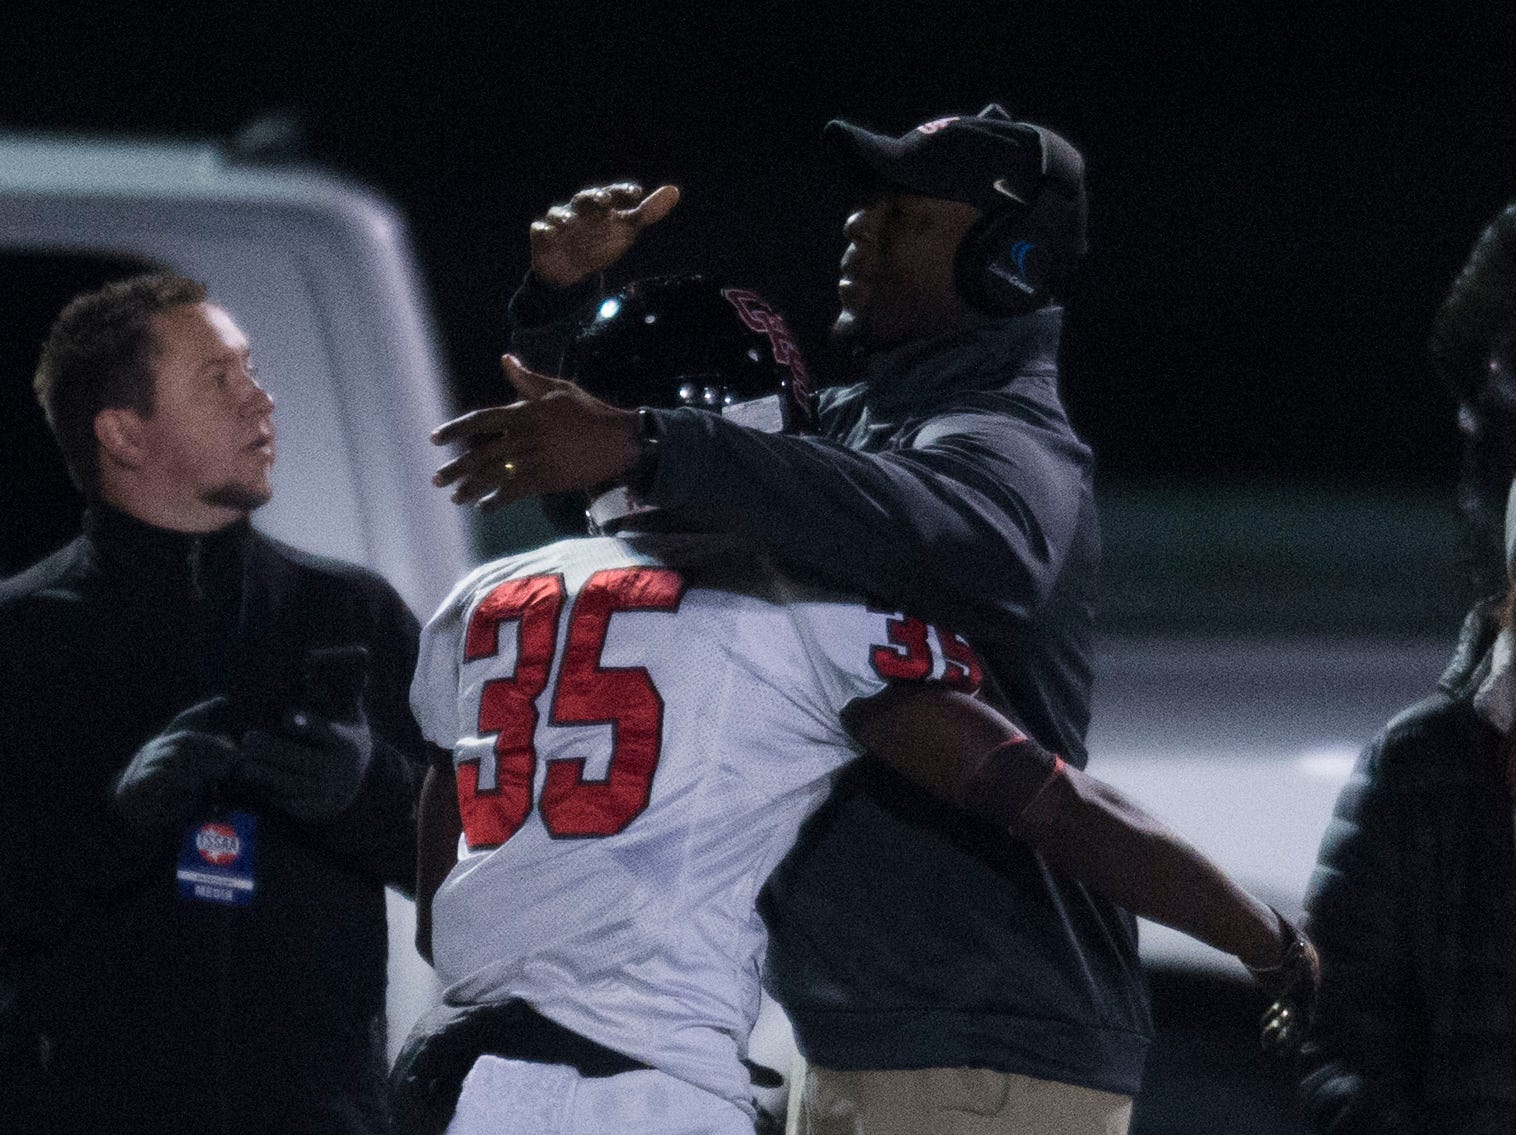 Central head coach Bryson Rosser hugs player Jason Merritts (35) after his touchdown, the first of the game, during a Class 5A semifinal game between Central at Catholic Friday, Nov. 23, 2018. Central defeated Catholic 24-19.